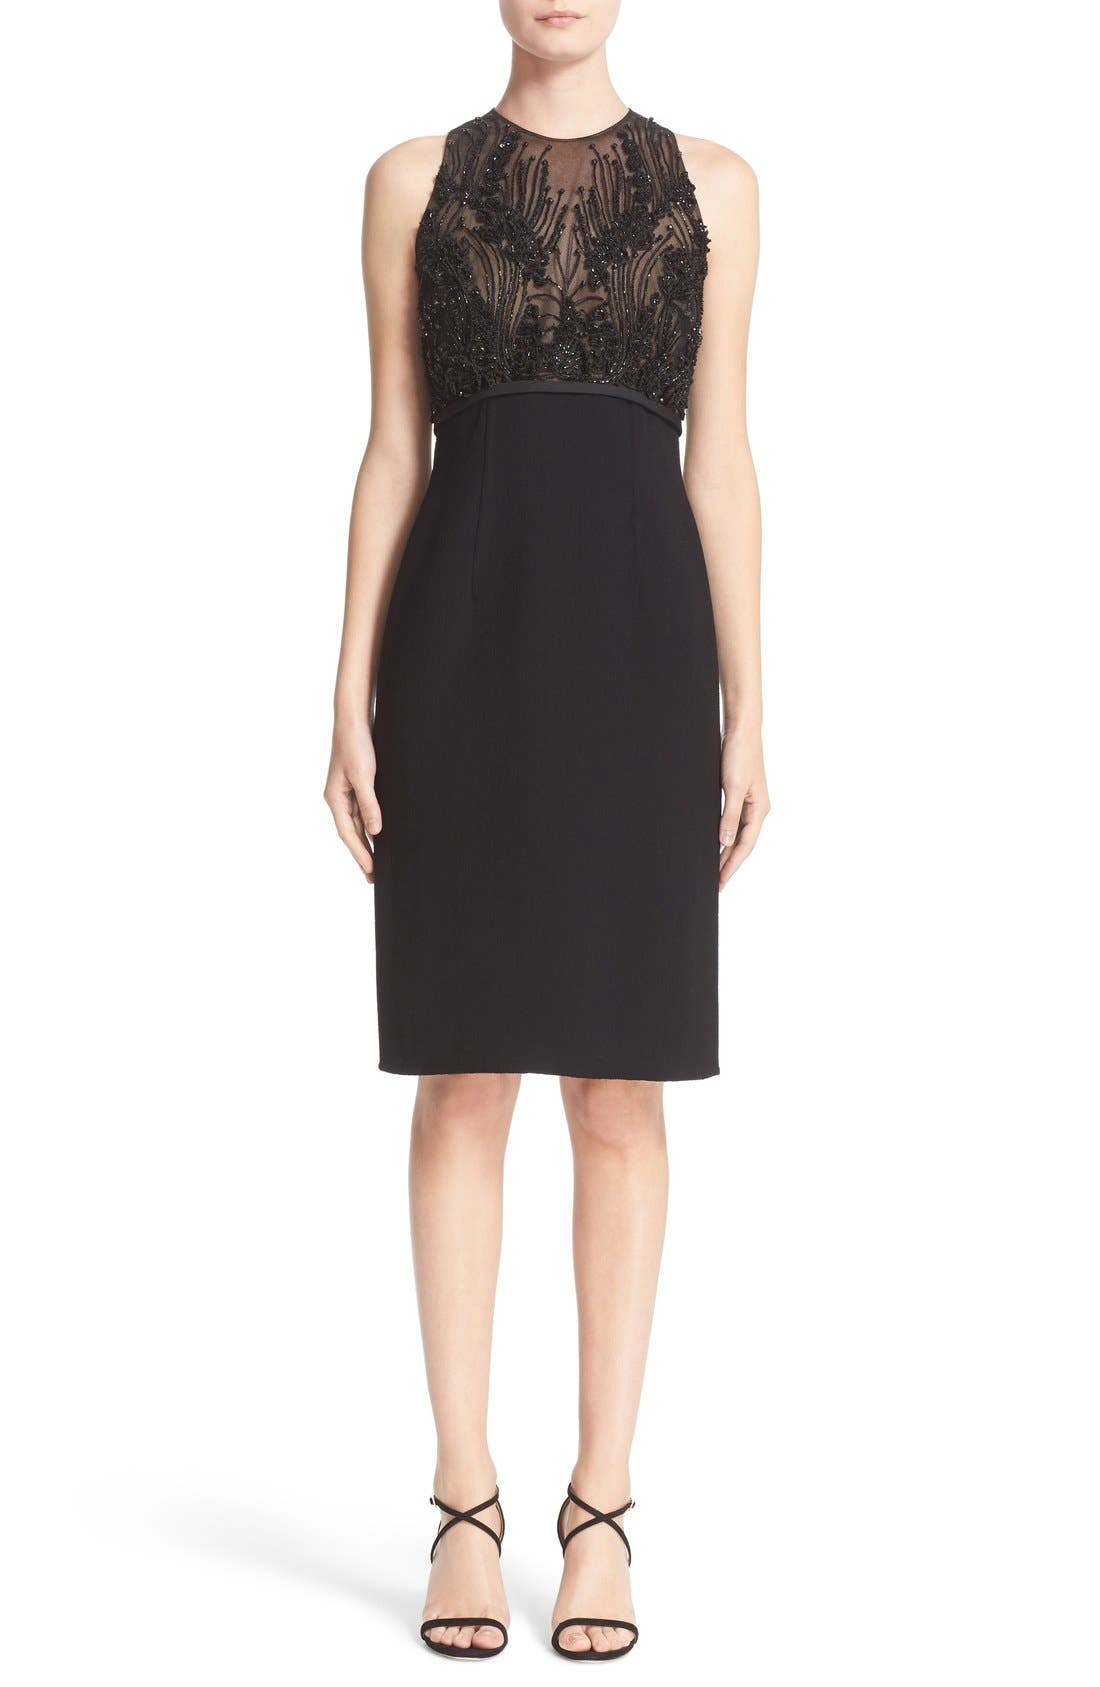 CARMEN MARC VALVO COUTURE Embellished Bodice Sleeveless Cocktail